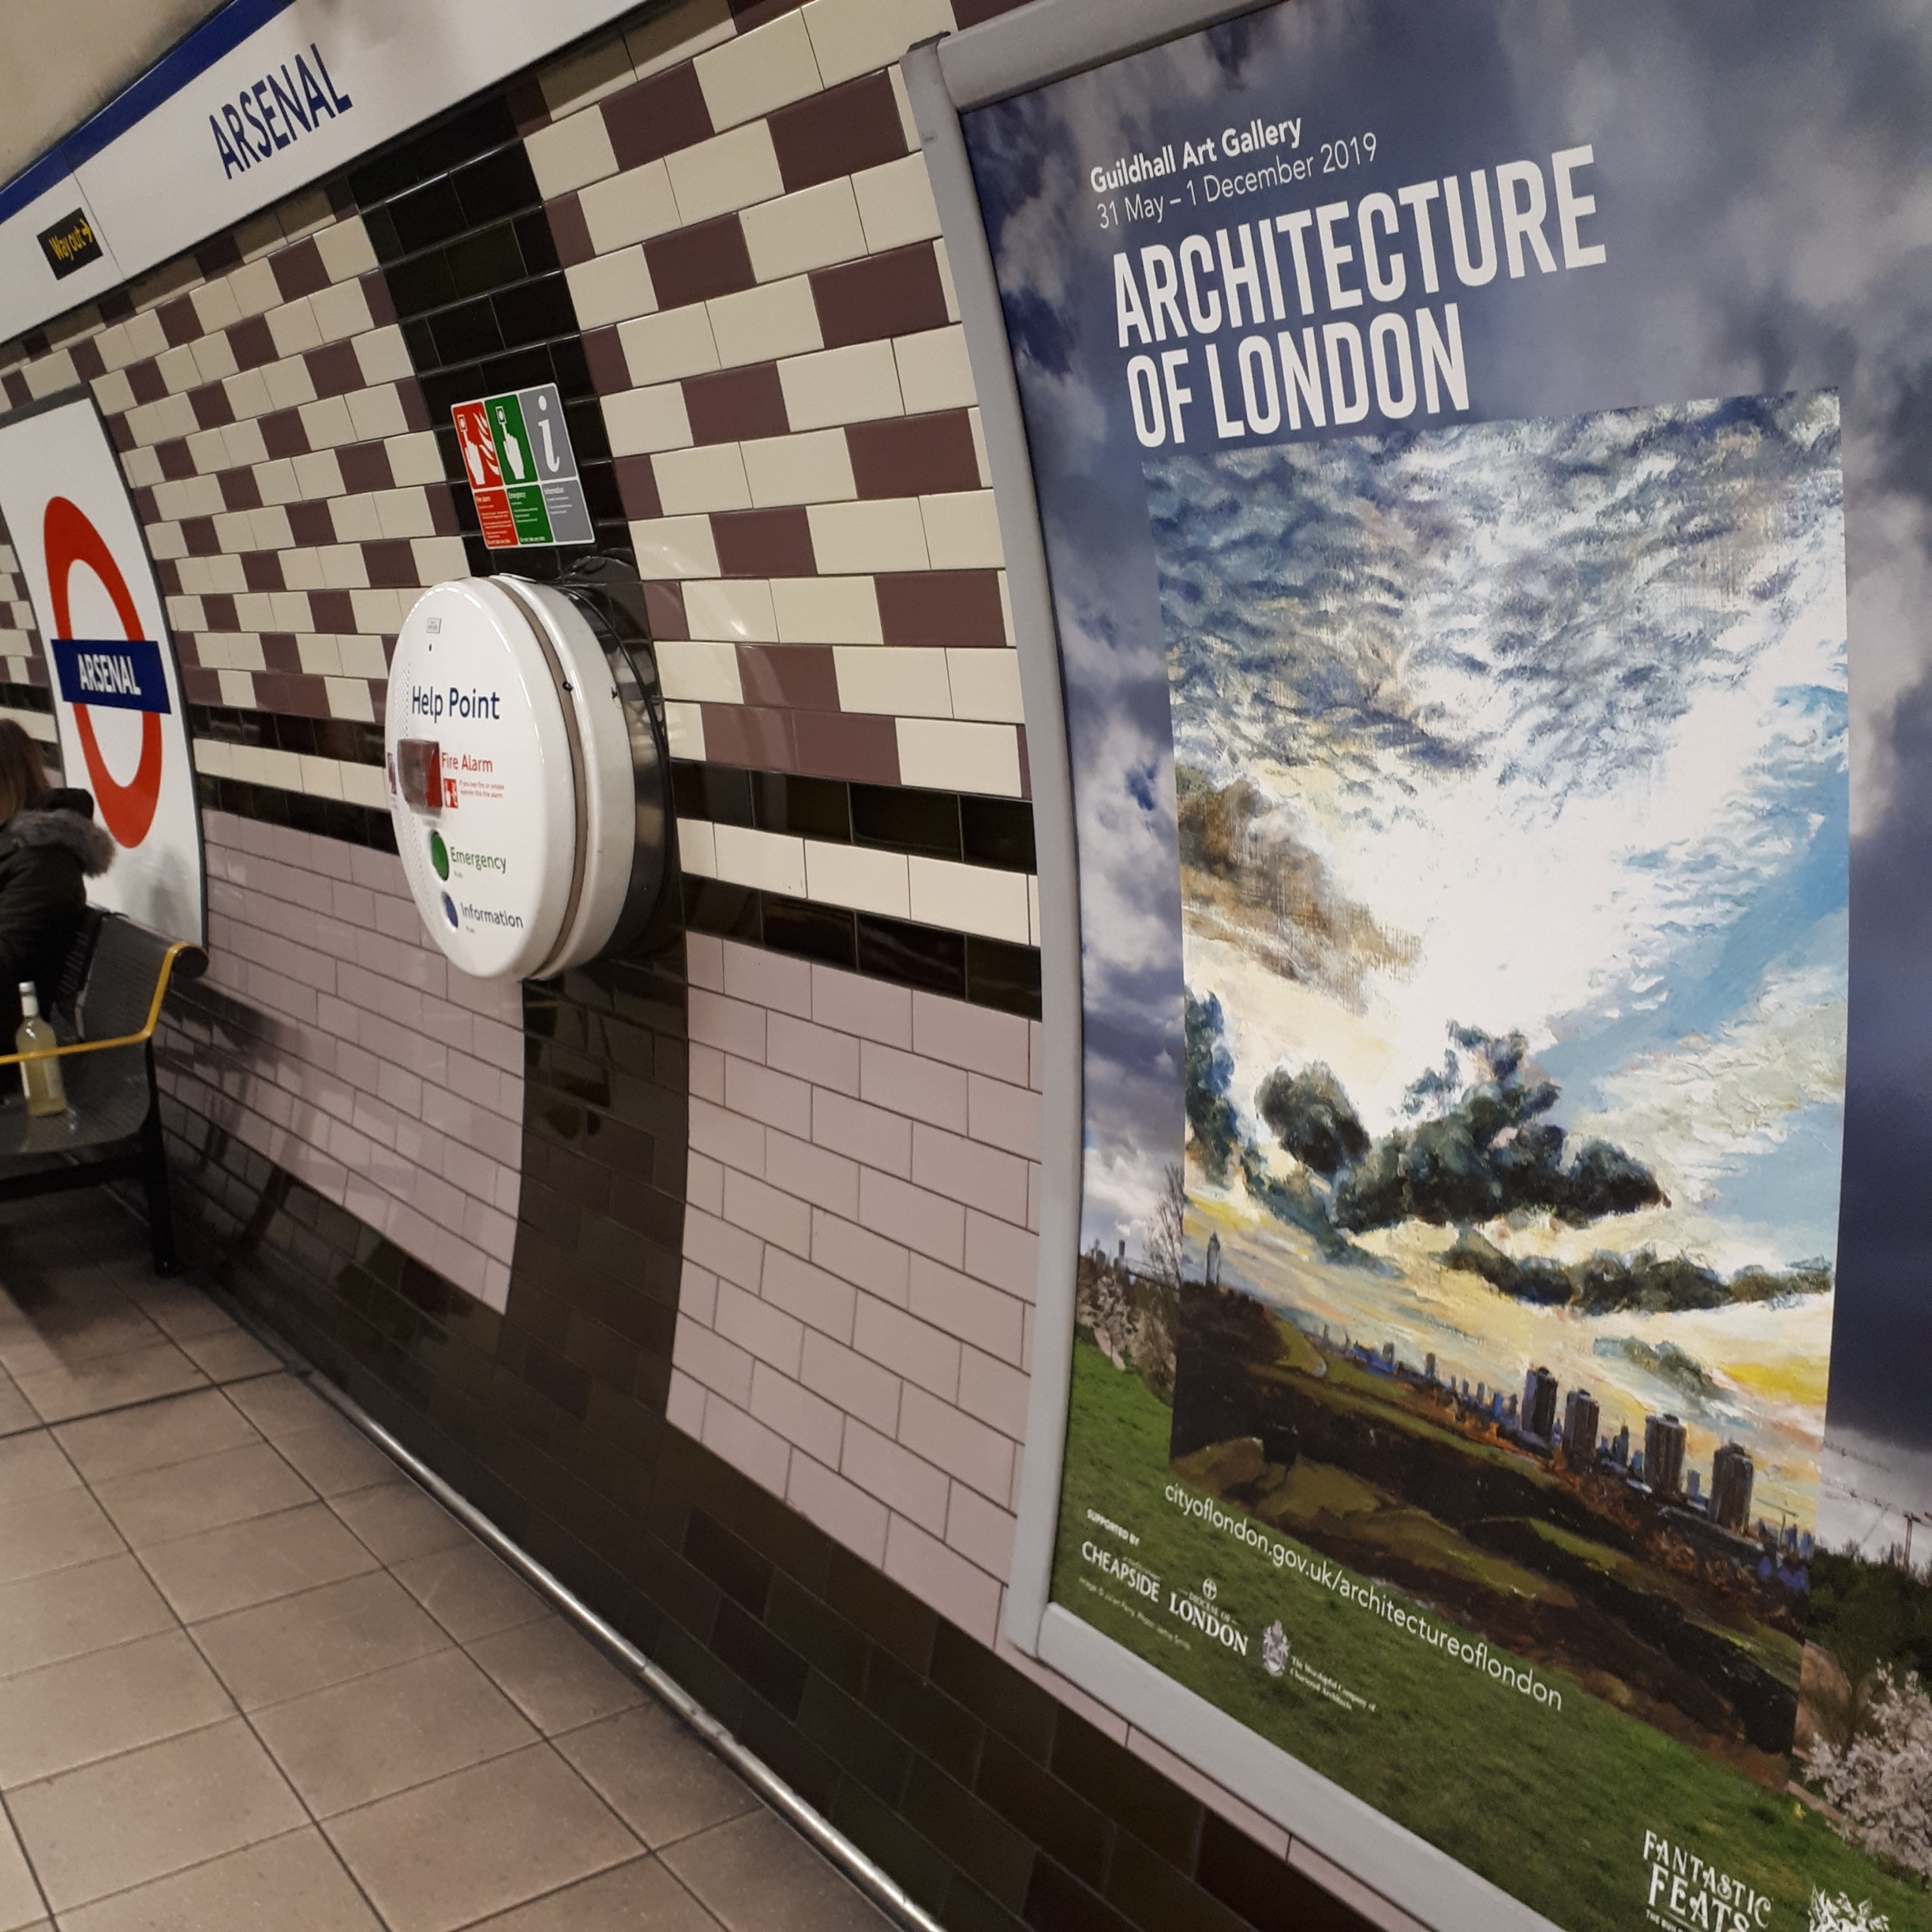 Architecture of London, London Underground poster at Arsenal Station featuring painting by Julian Perry.